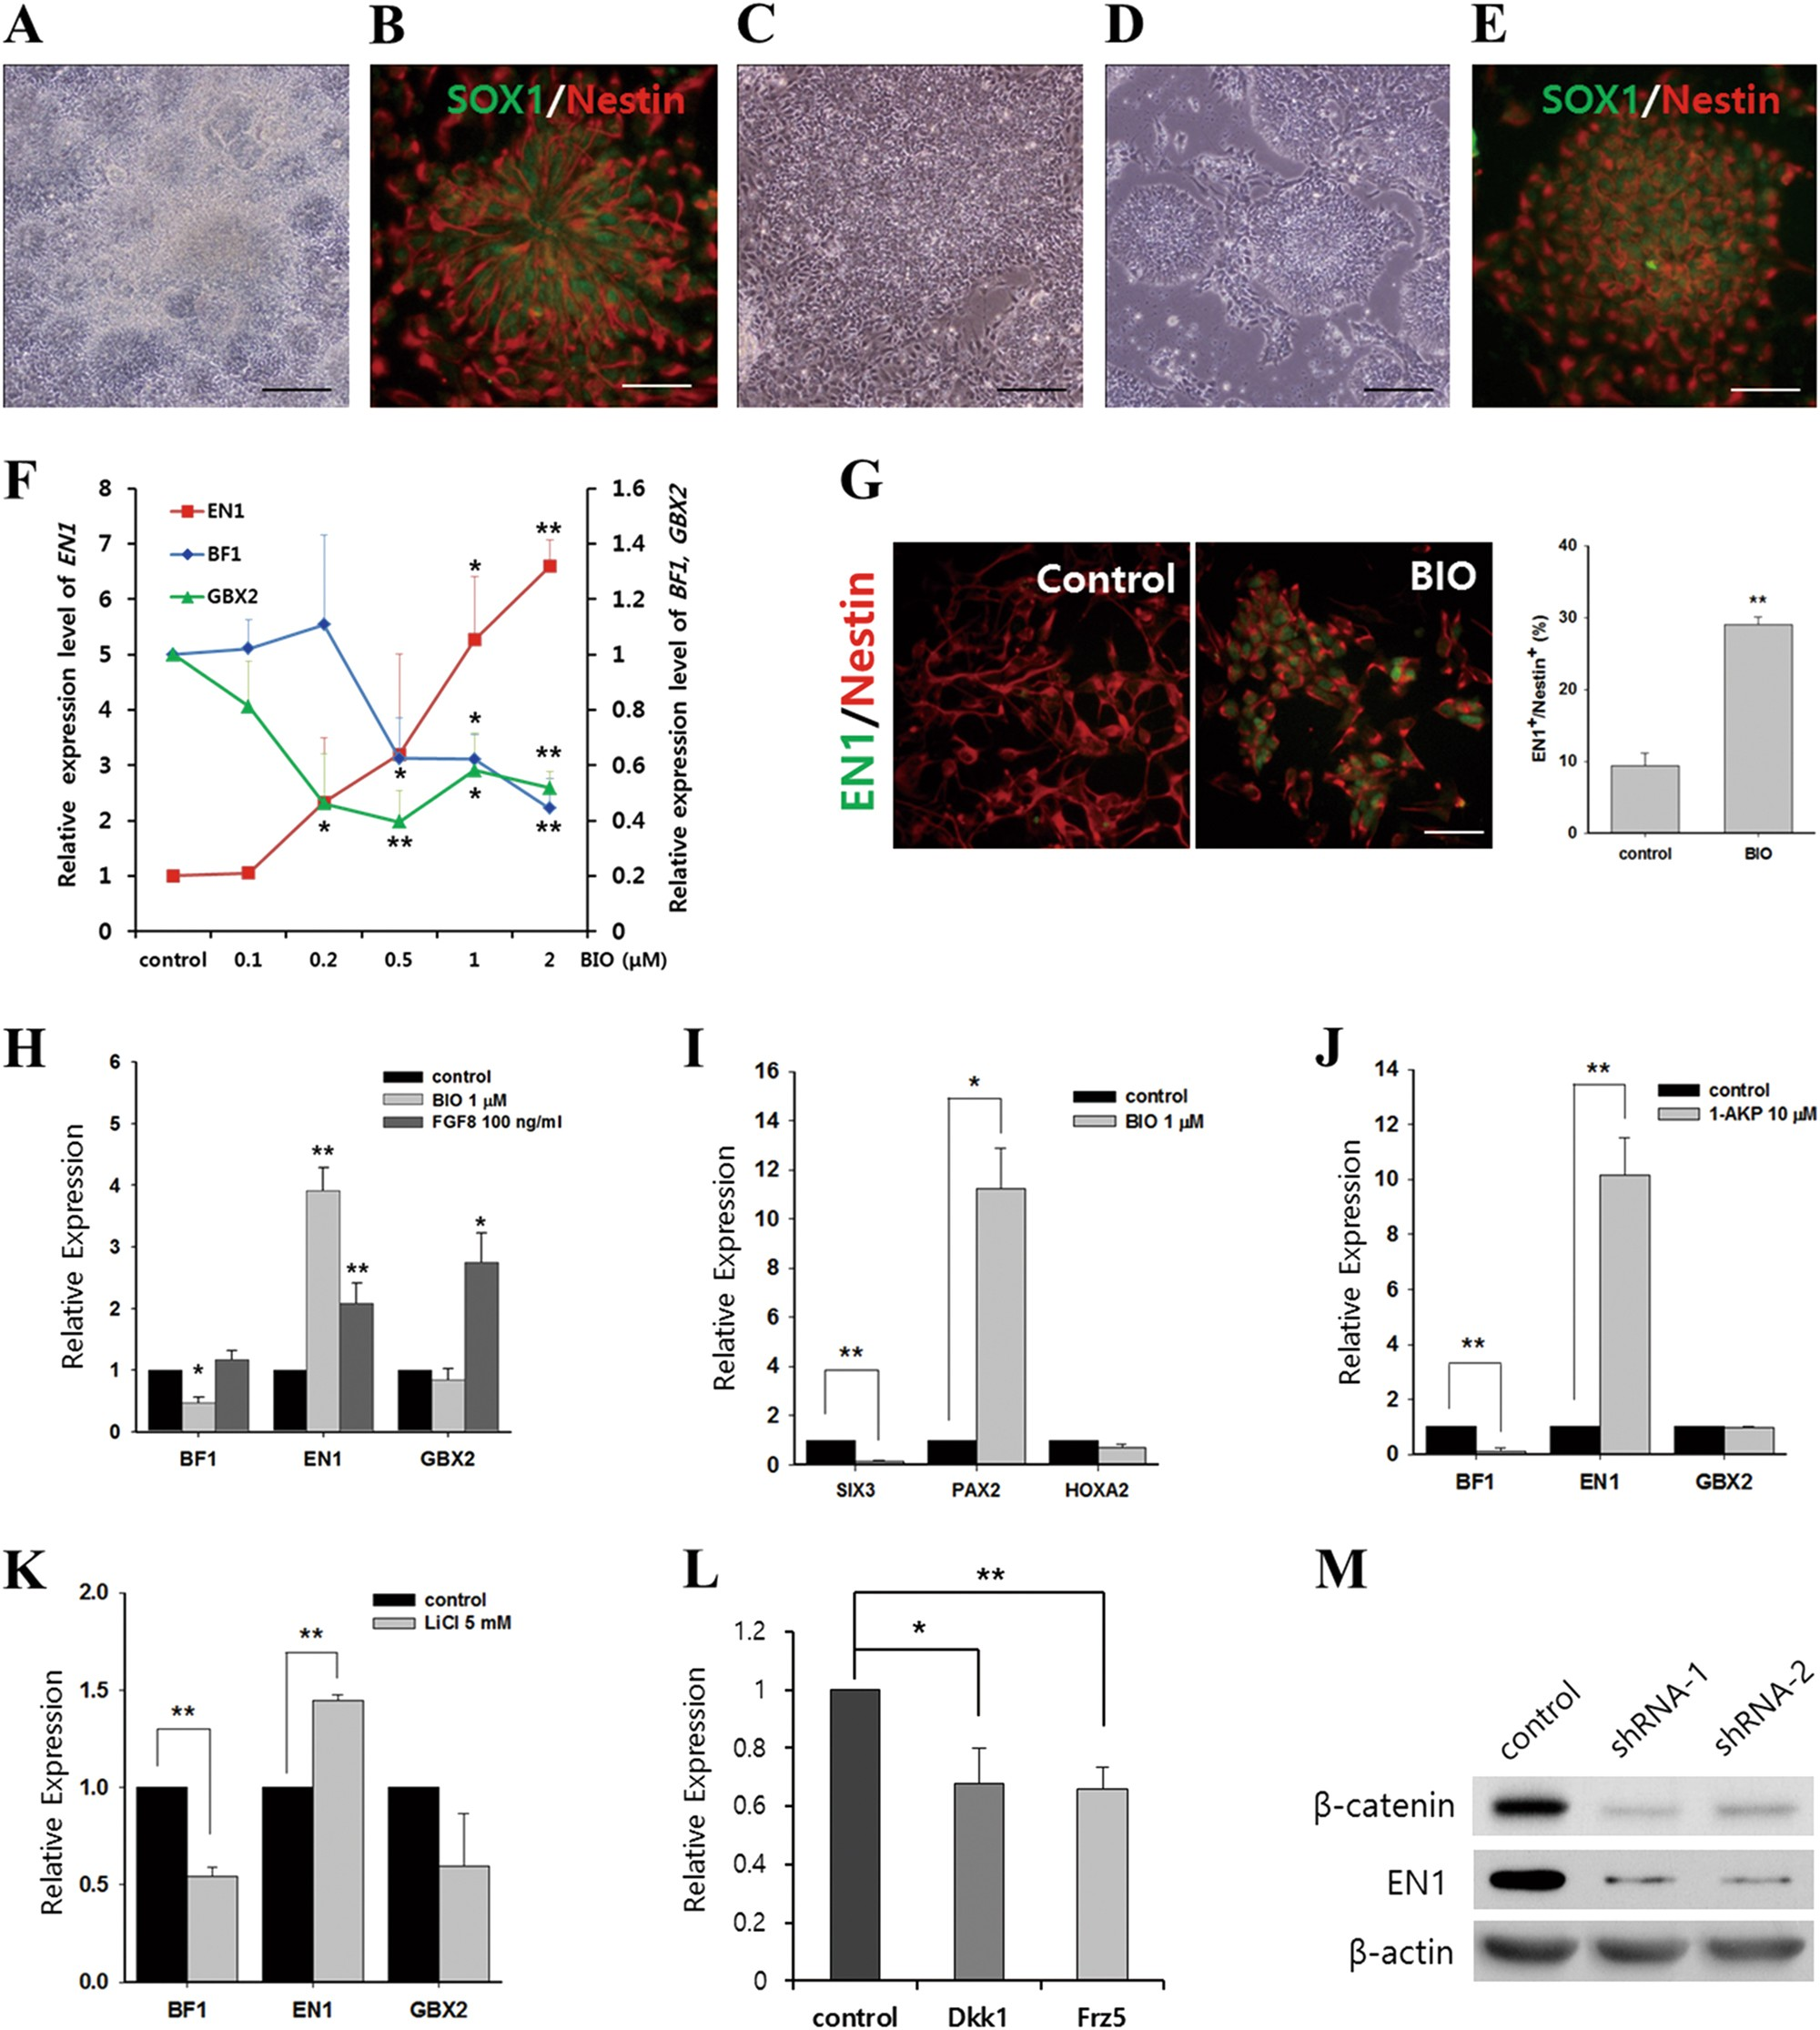 Wnt Signal Activation Induces Midbrain Specification Through Direct Circuits Gt 6 12 Volt Adjustable Power Supply Circuit Schematic Binding Of The Beta Catenin Tcf4 Complex To En1 Promoter In Human Pluripotent Stem